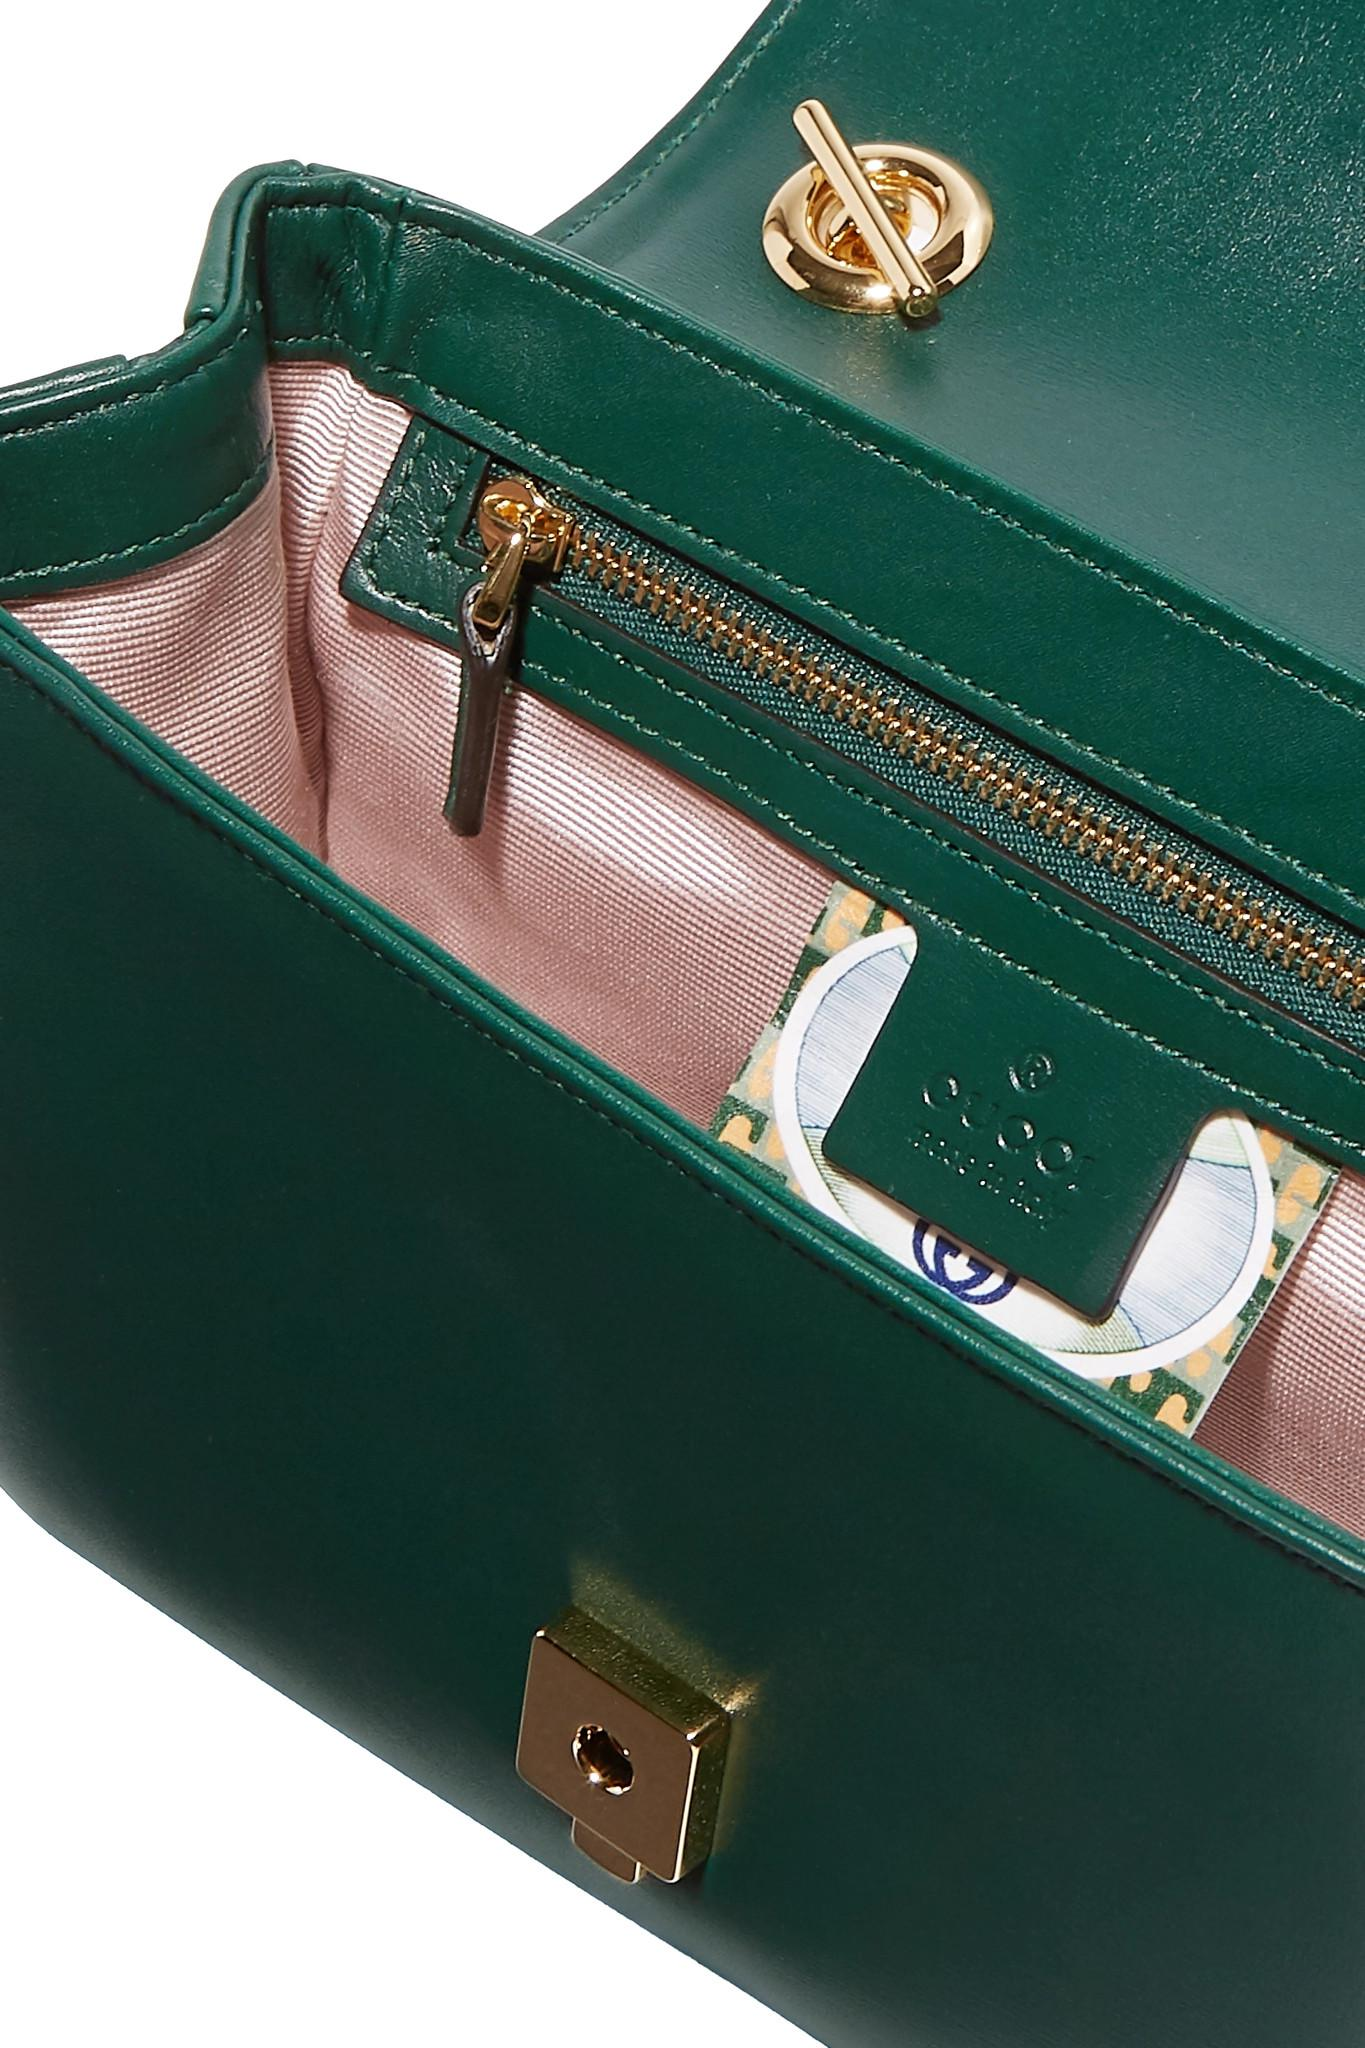 a5108d358d8f Gucci Rajah Small Embellished Leather Shoulder Bag in Green - Lyst